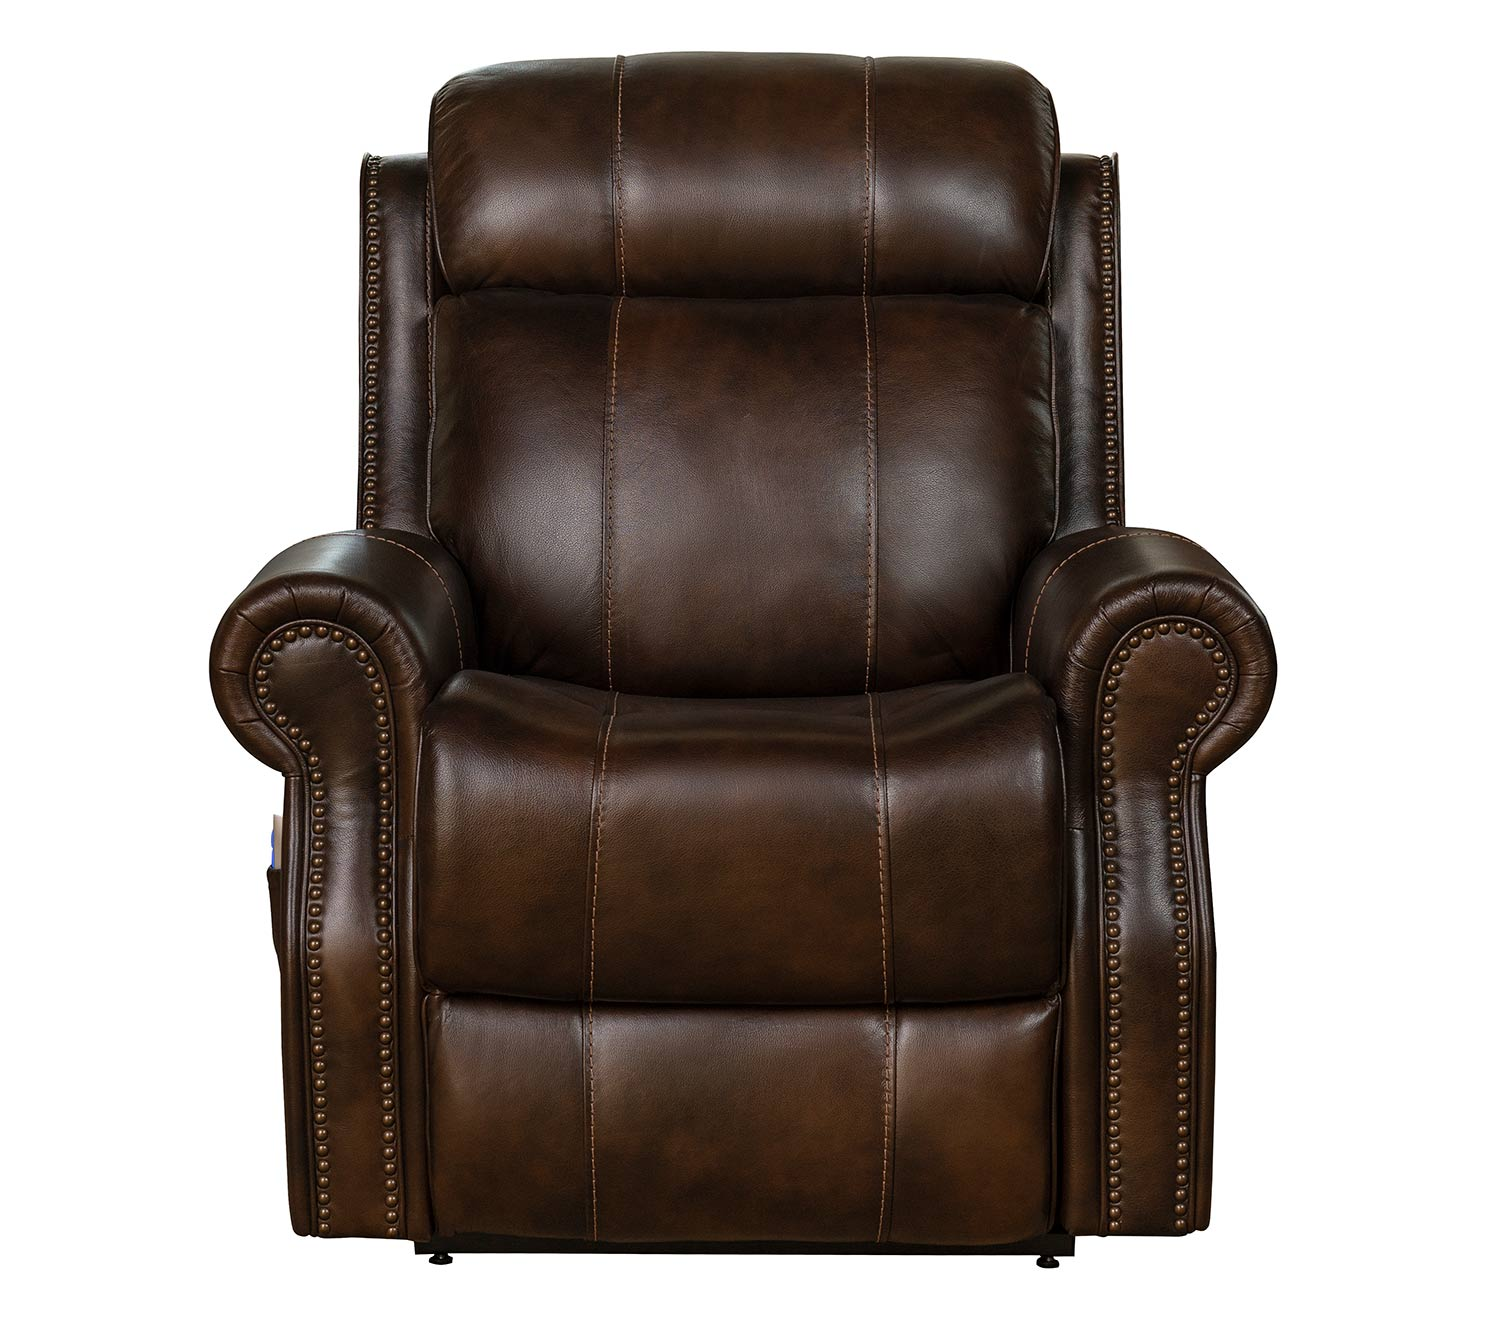 Barcalounger Langston Lift Chair Recliner with Power Head Rest and Lumbar - Tonya Brown/Leather Match